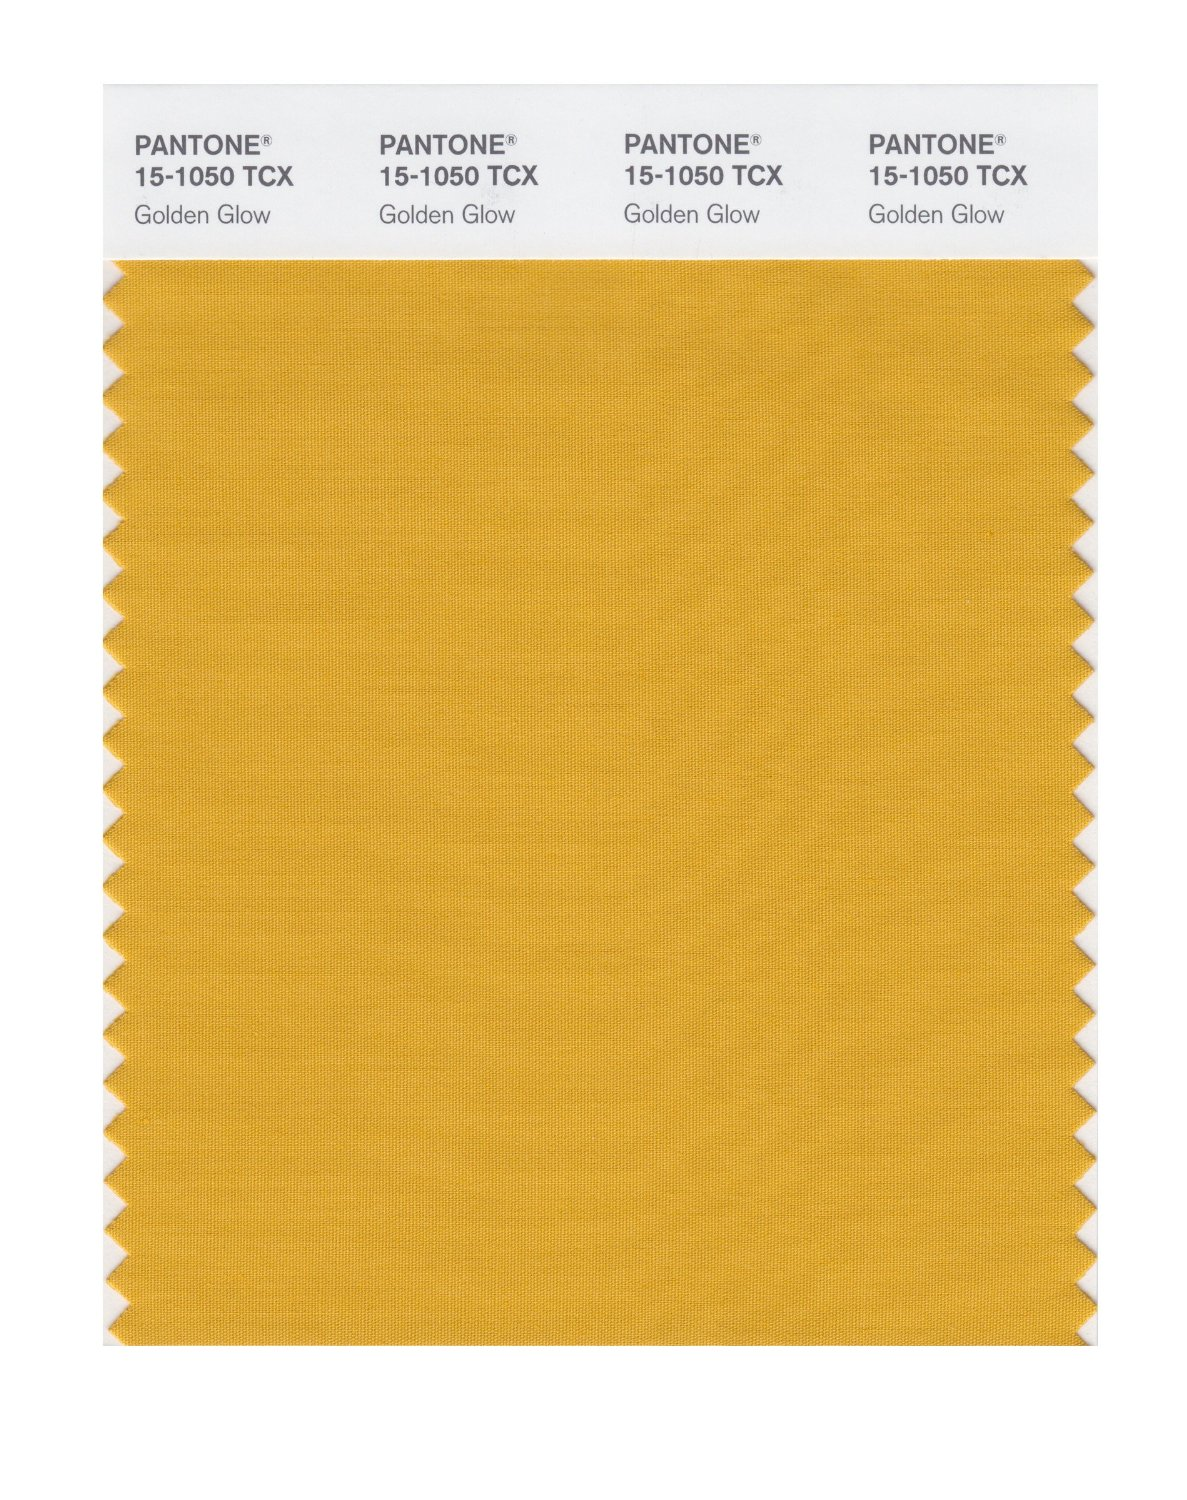 Pantone Smart Swatch 15-1050 Golden Glow